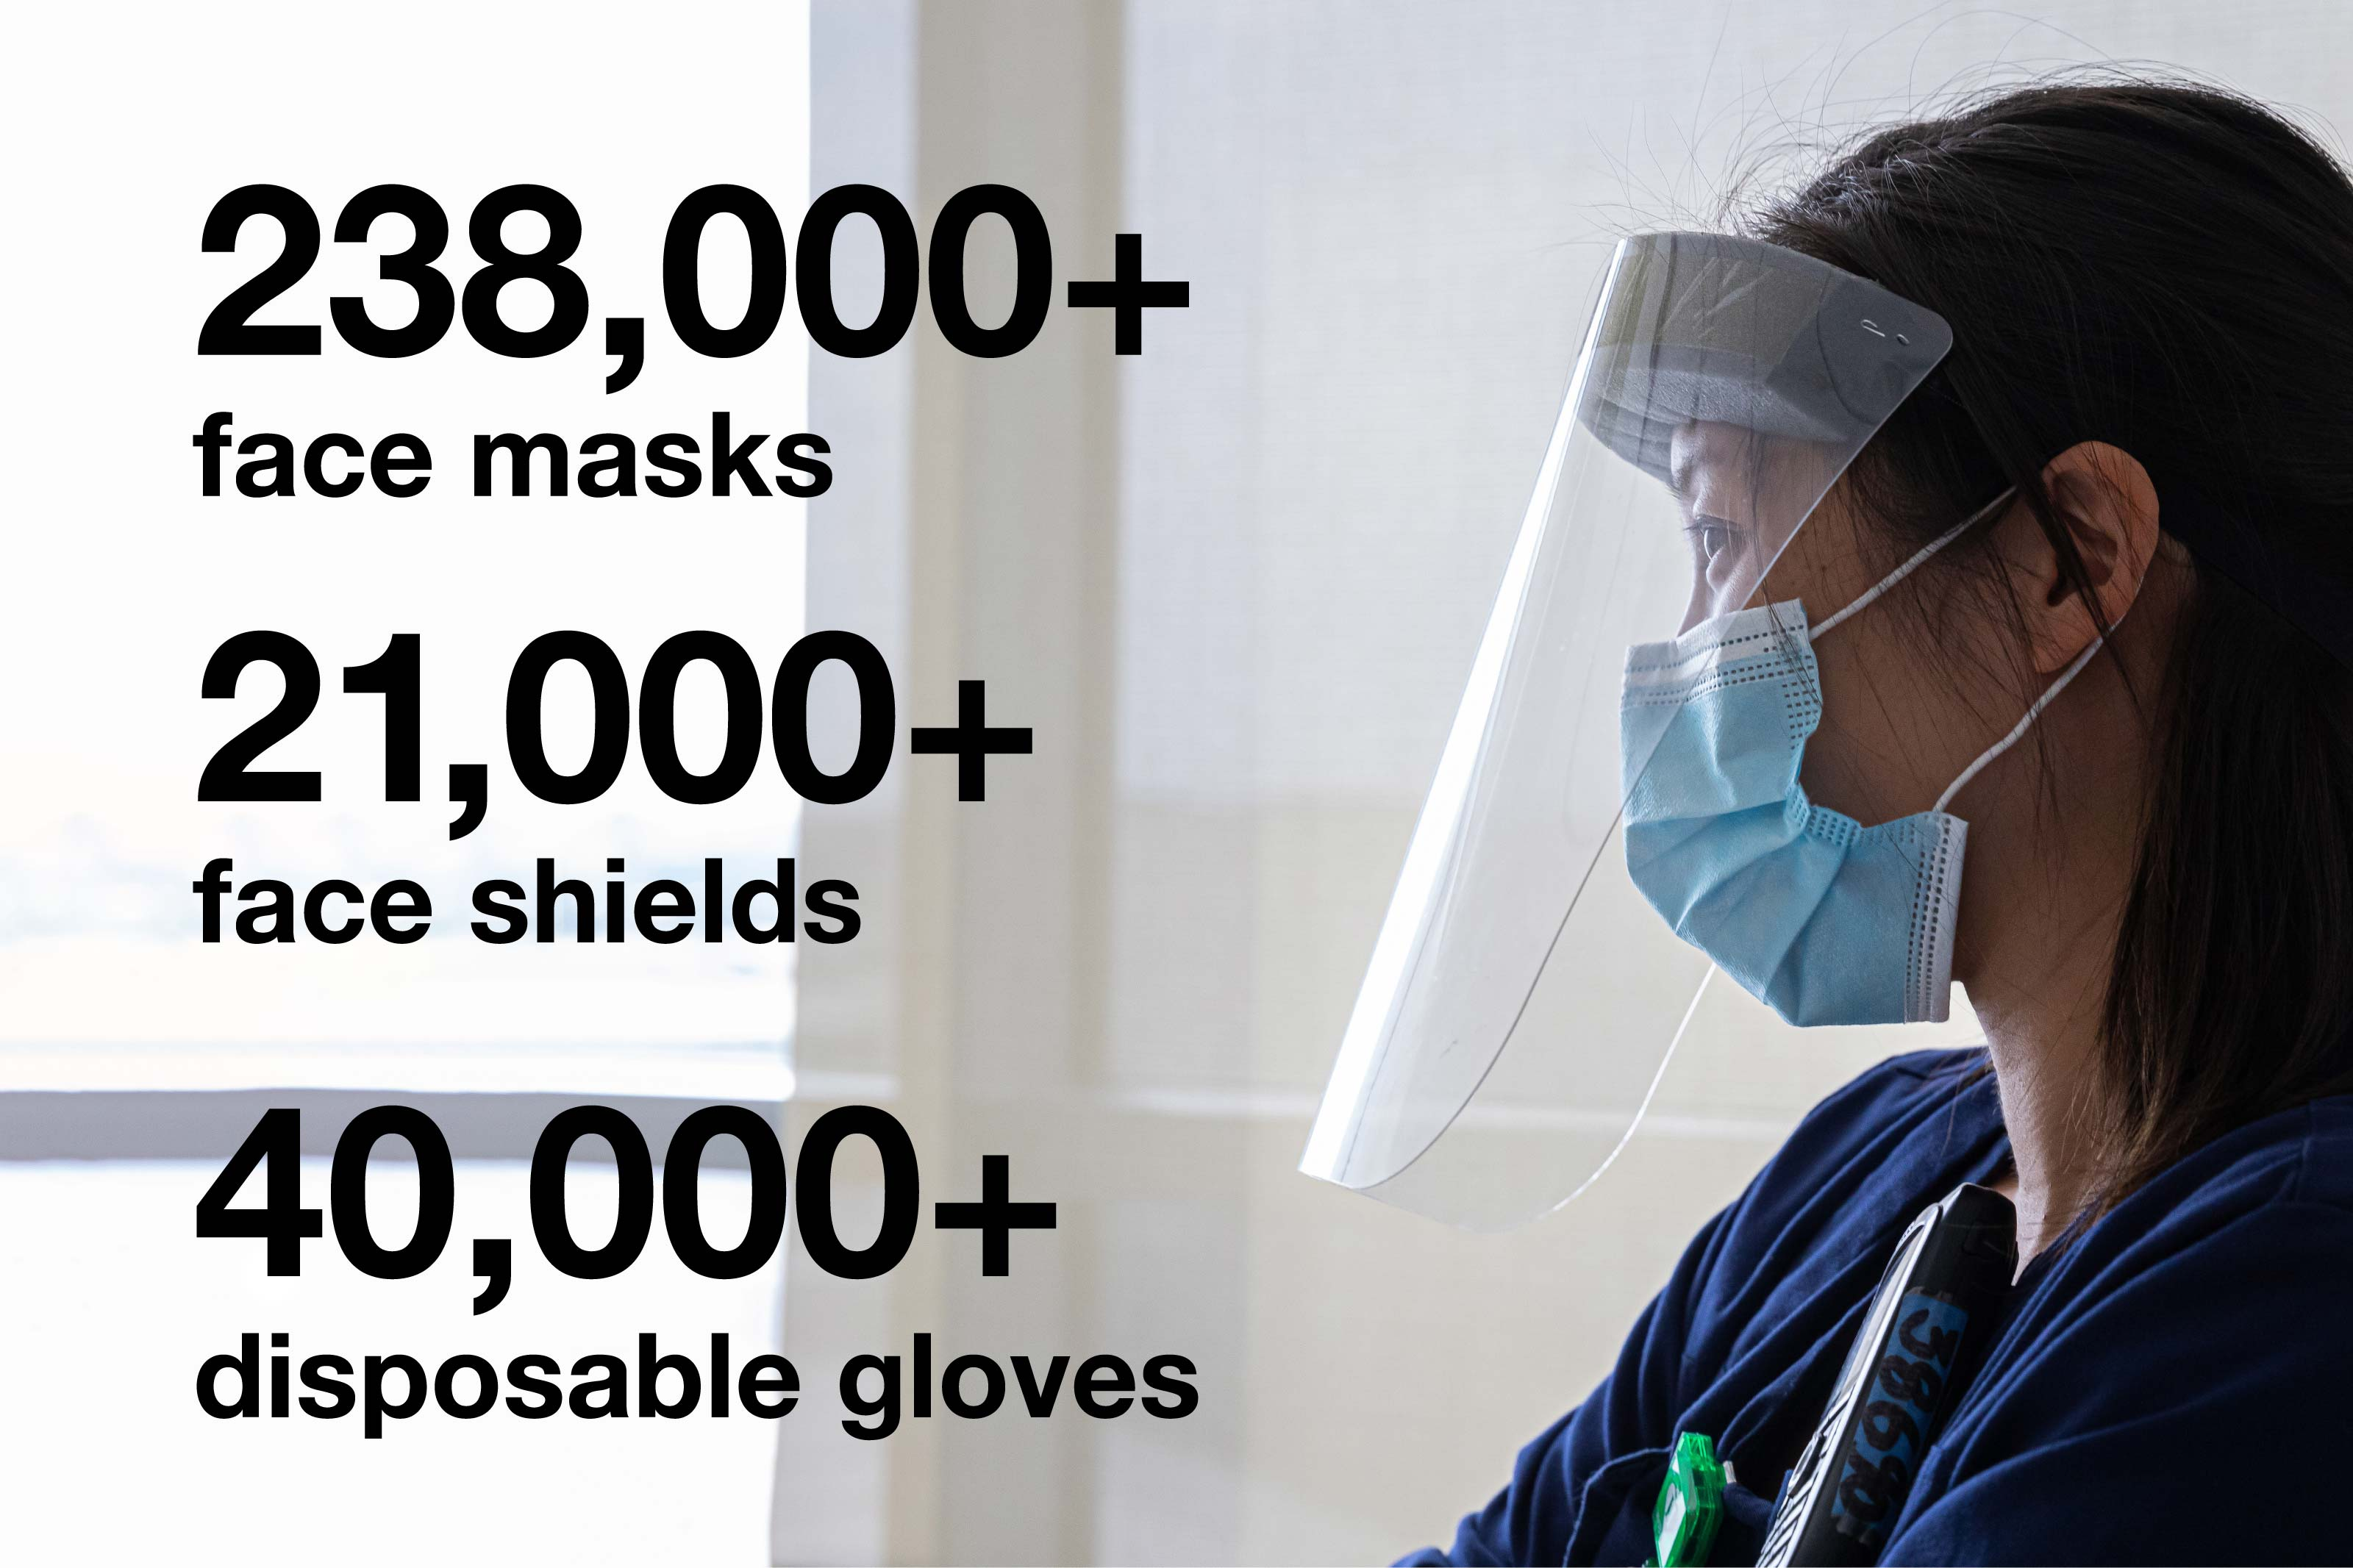 Infographic illustrating people donated more than 238,000 face masks, 21,000 face shields, and 40,000 disposable gloves to UT Southwestern